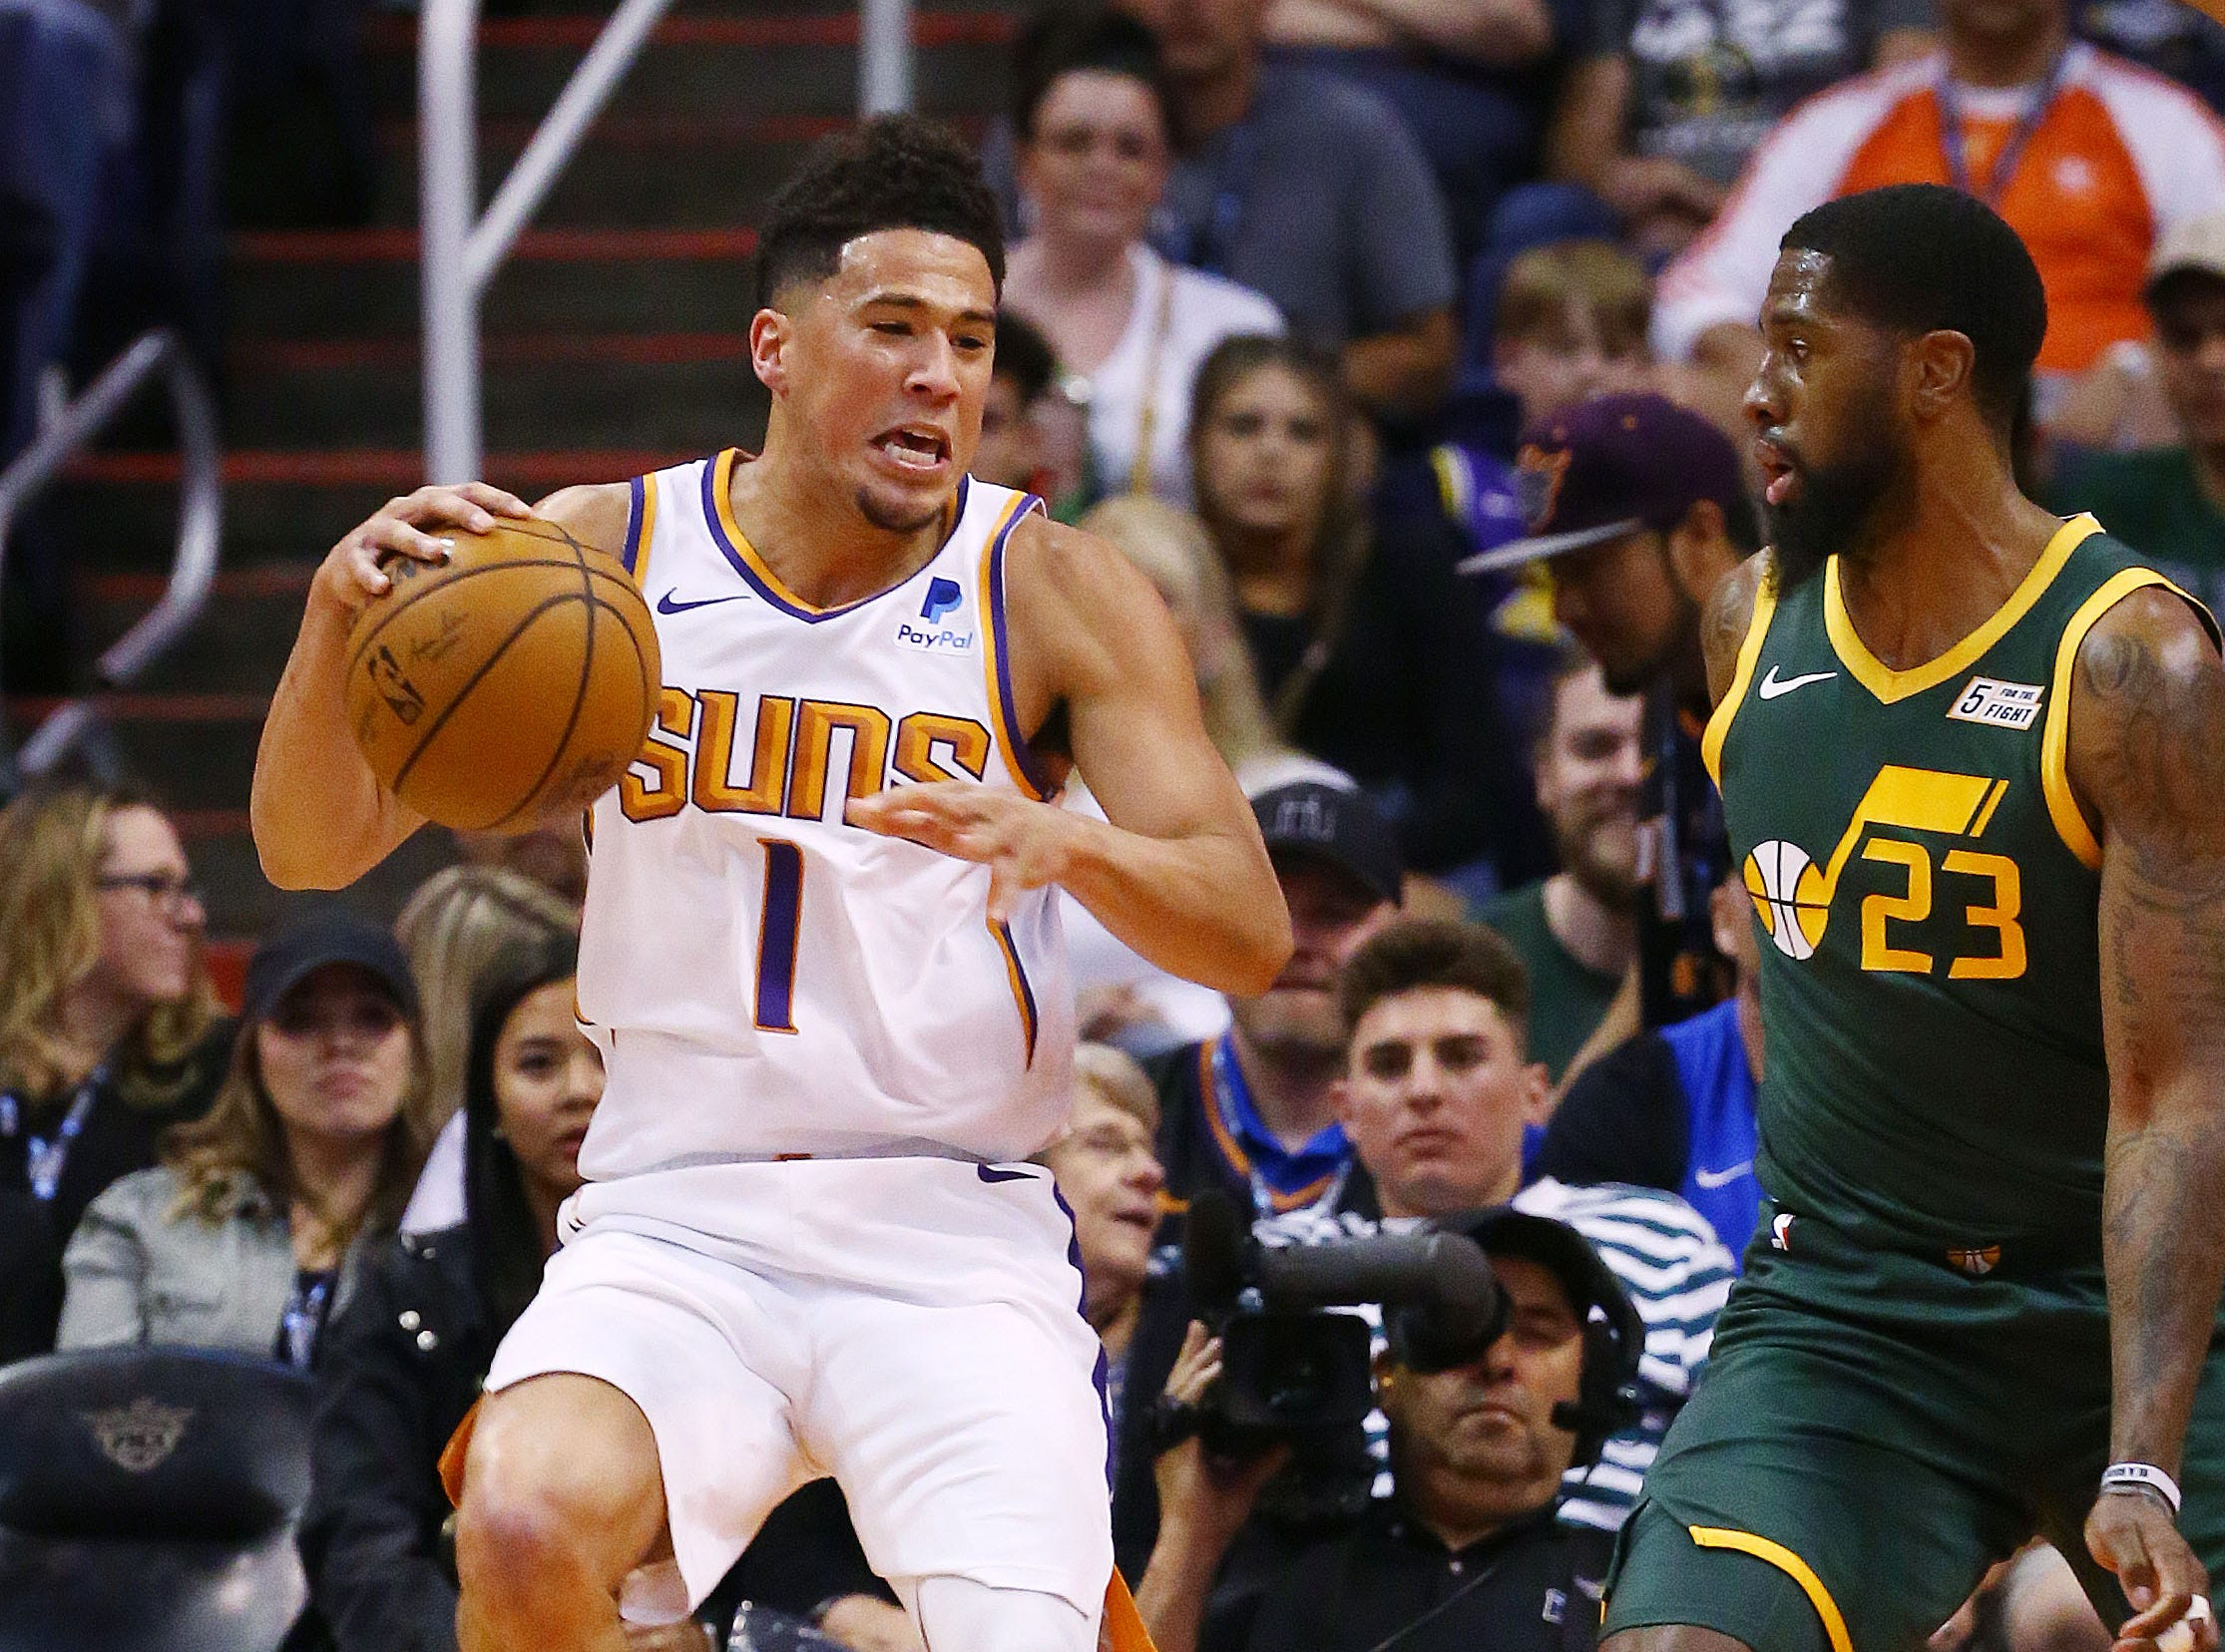 Phoenix Suns guard Devin Booker (1) rolls his left ankle after landing on the foot of Utah Jazz forward Royce O'Neale (23) in the first half on Apr. 3, 2019 at Talking Stick Resort Arena in Phoenix, Ariz. Devin Booker helped off the court to the locker room.